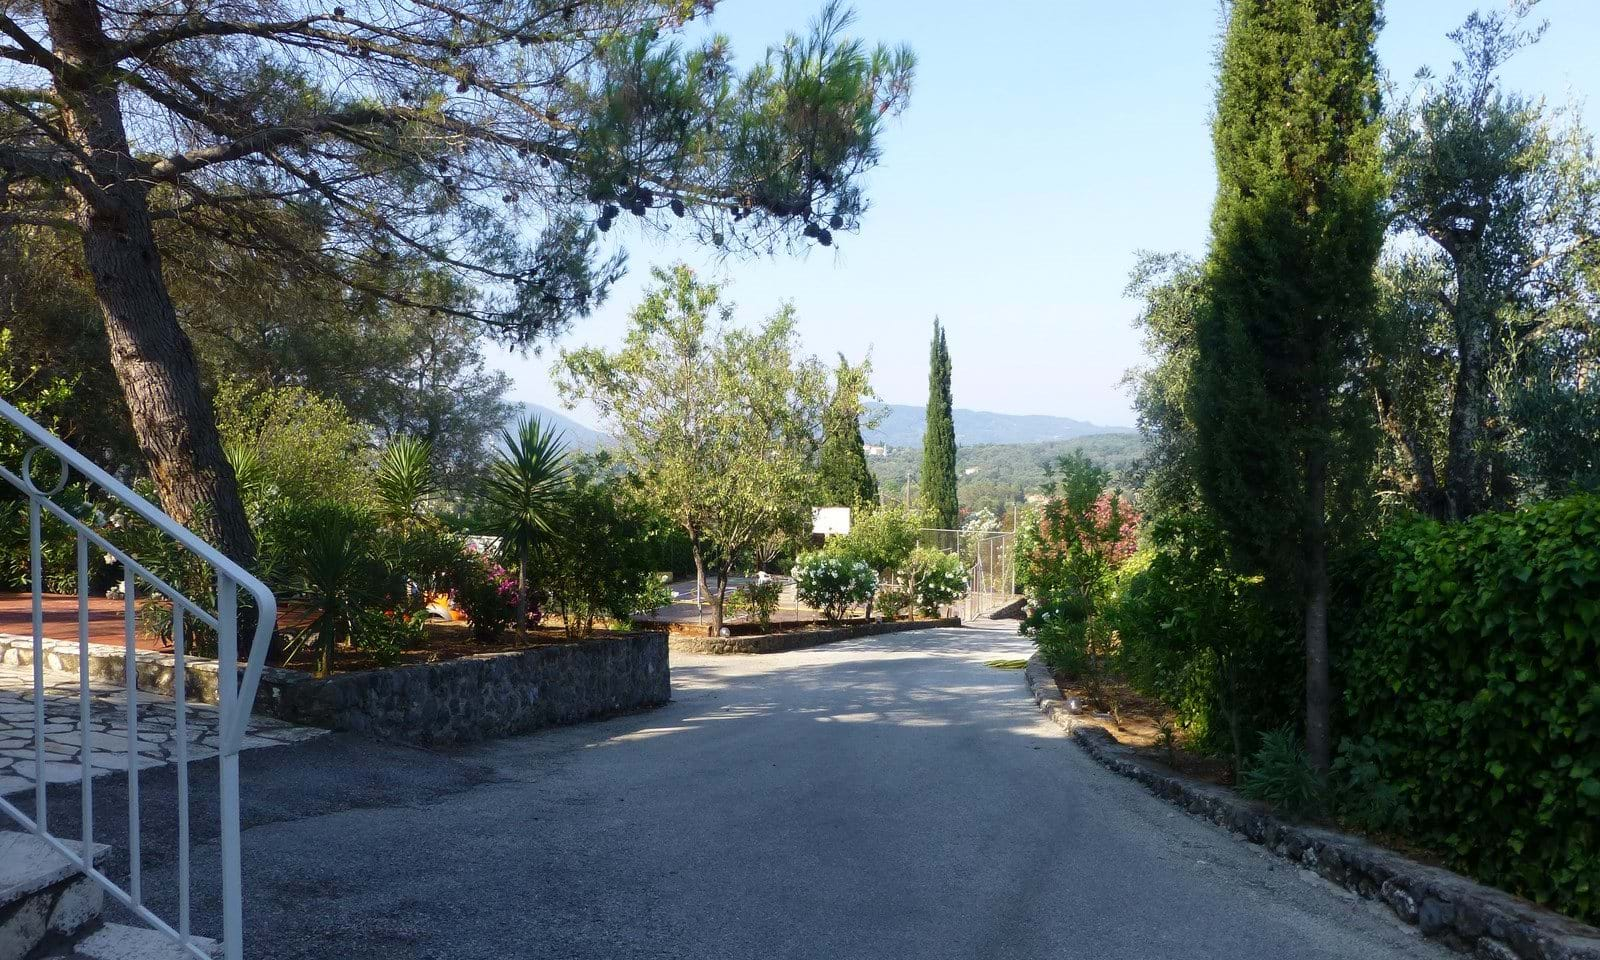 Holiday homes in Corfu